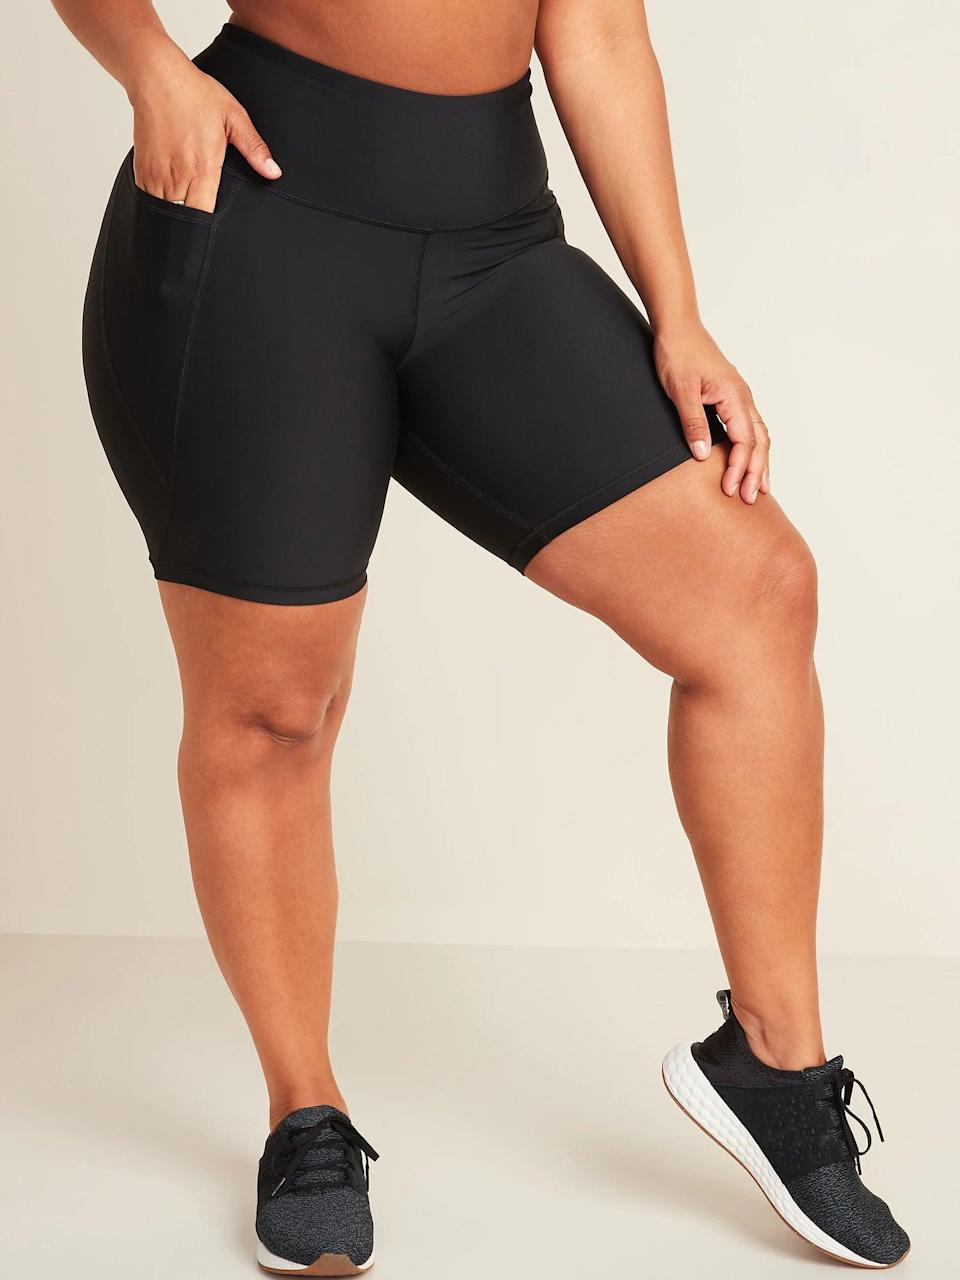 <p>These <span>Old Navy High-Waisted Elevate Powersoft Side-Pocket Biker Shorts</span> ($30) come in a shimmery fabric, making it a polished bottom for any blouse or fitted top.</p>